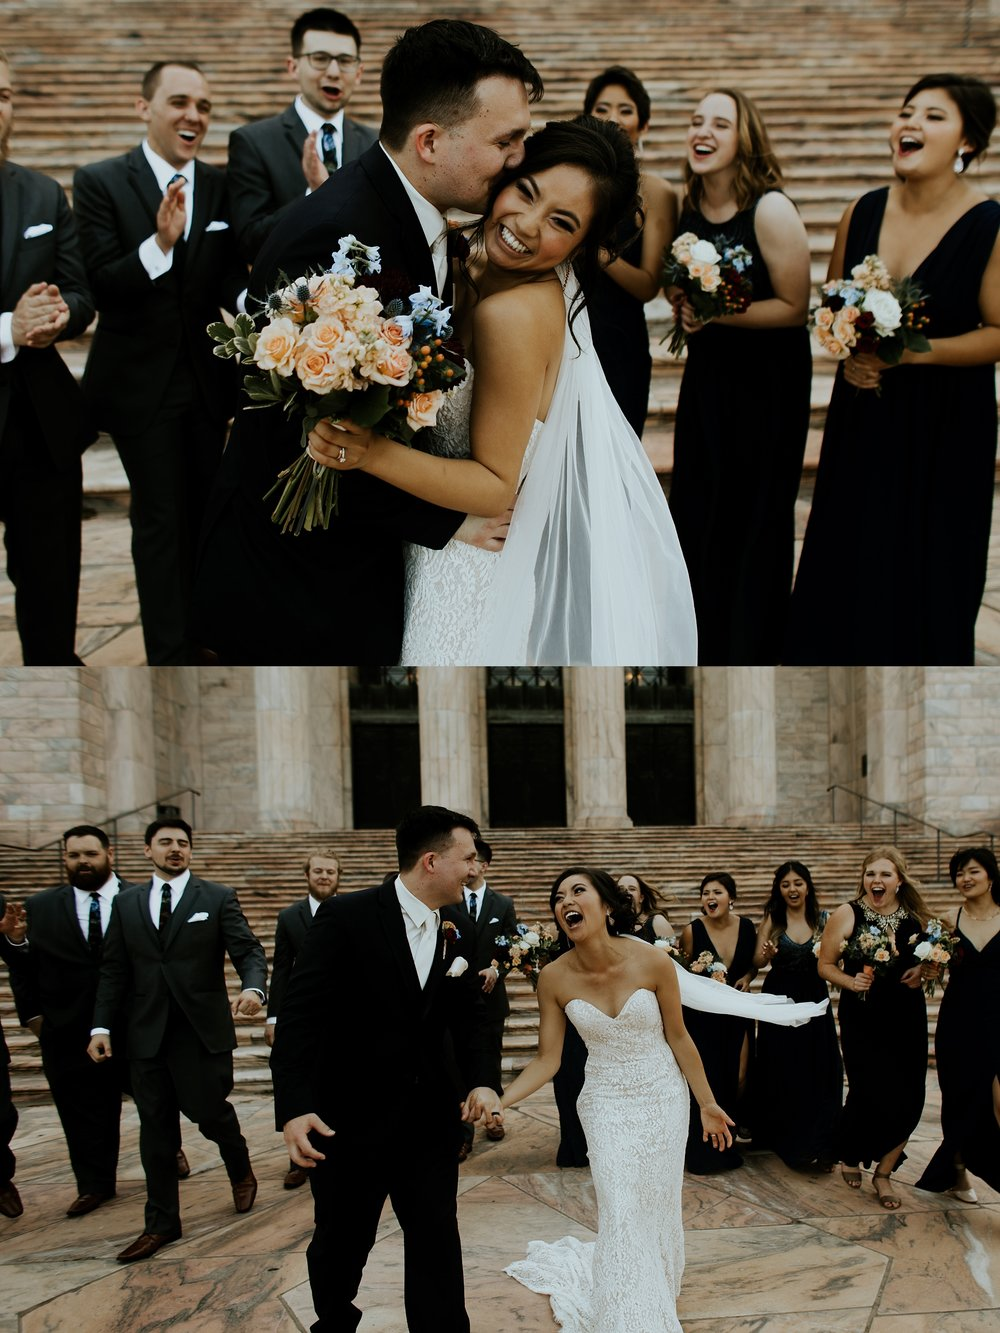 Whimsical Joslyn Art Museum Wedding by Trin Jensen - Omaha Nebraska Wedding Photographer_0013.jpg